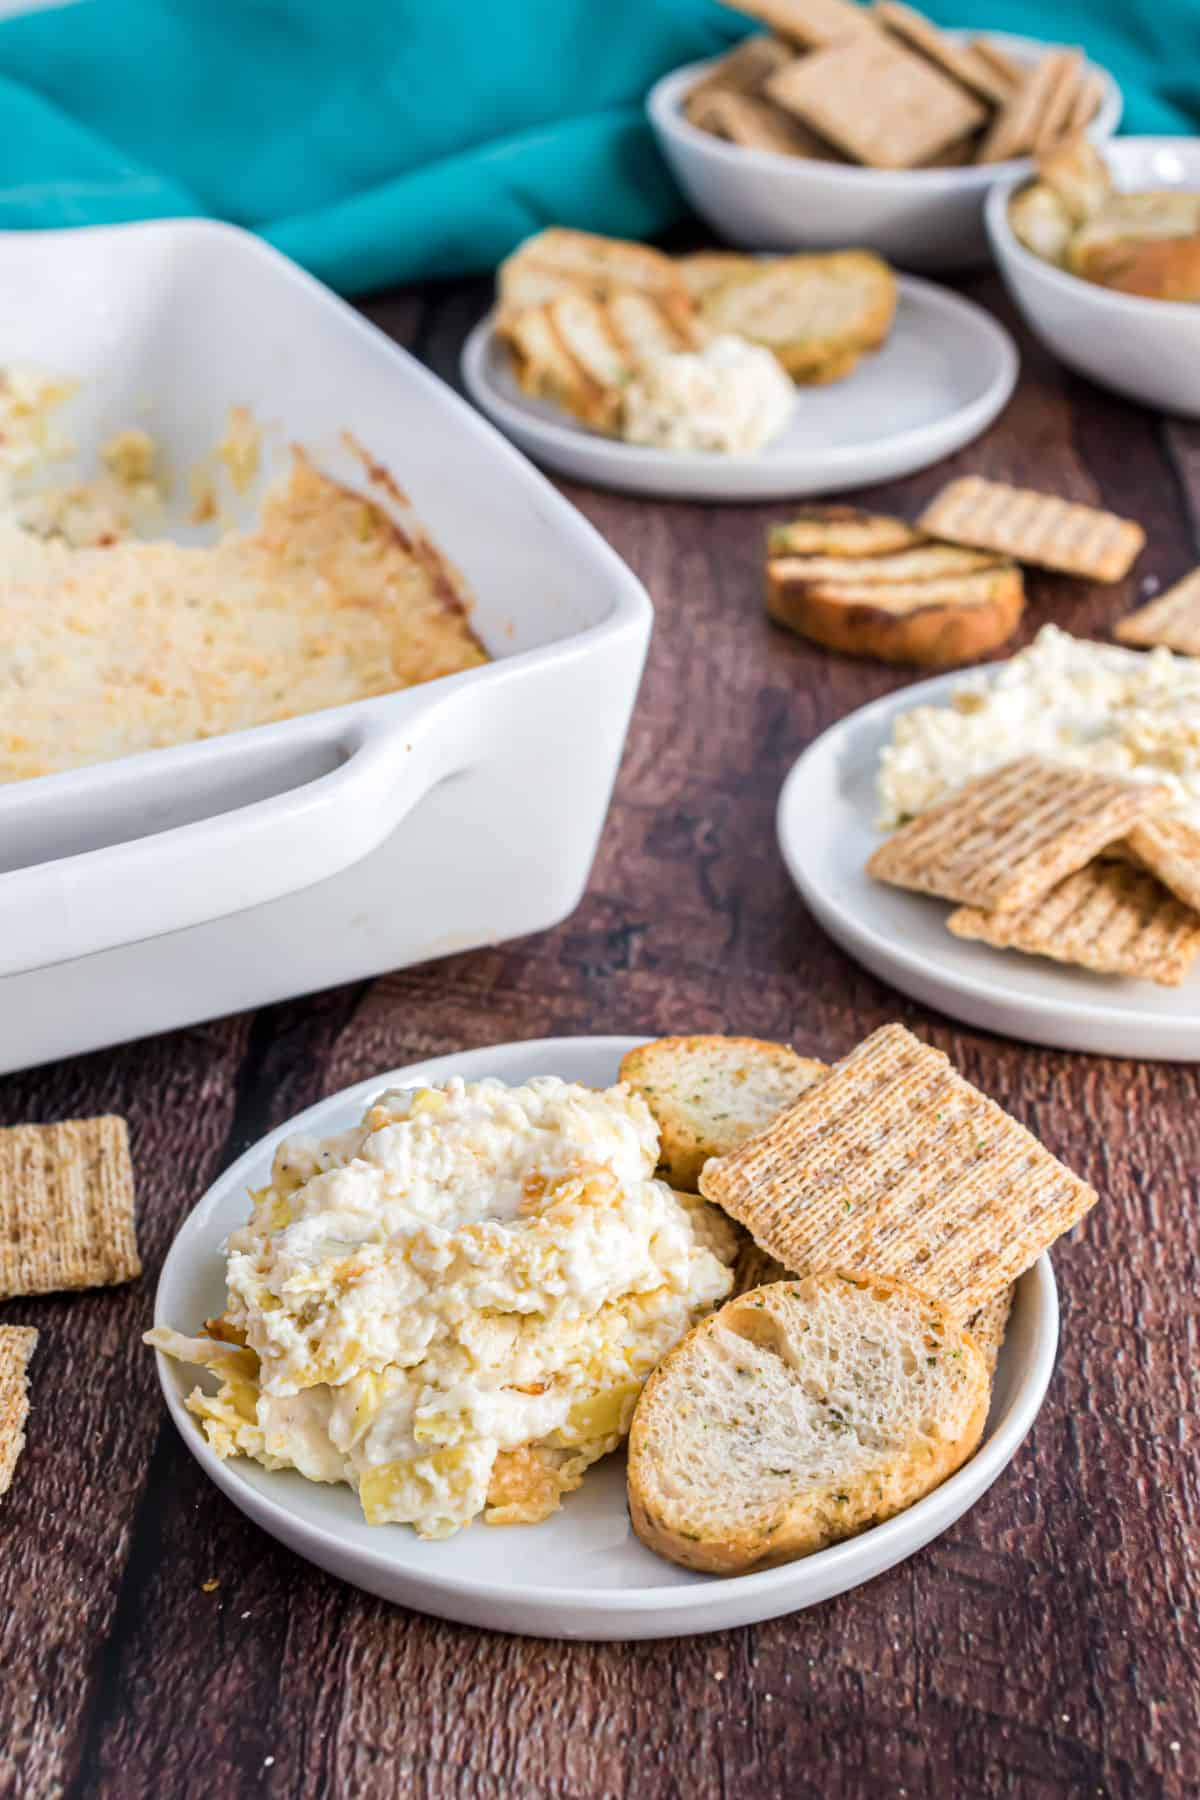 Artichoke dip served on a plate with triscuits and hearty bread pieces.